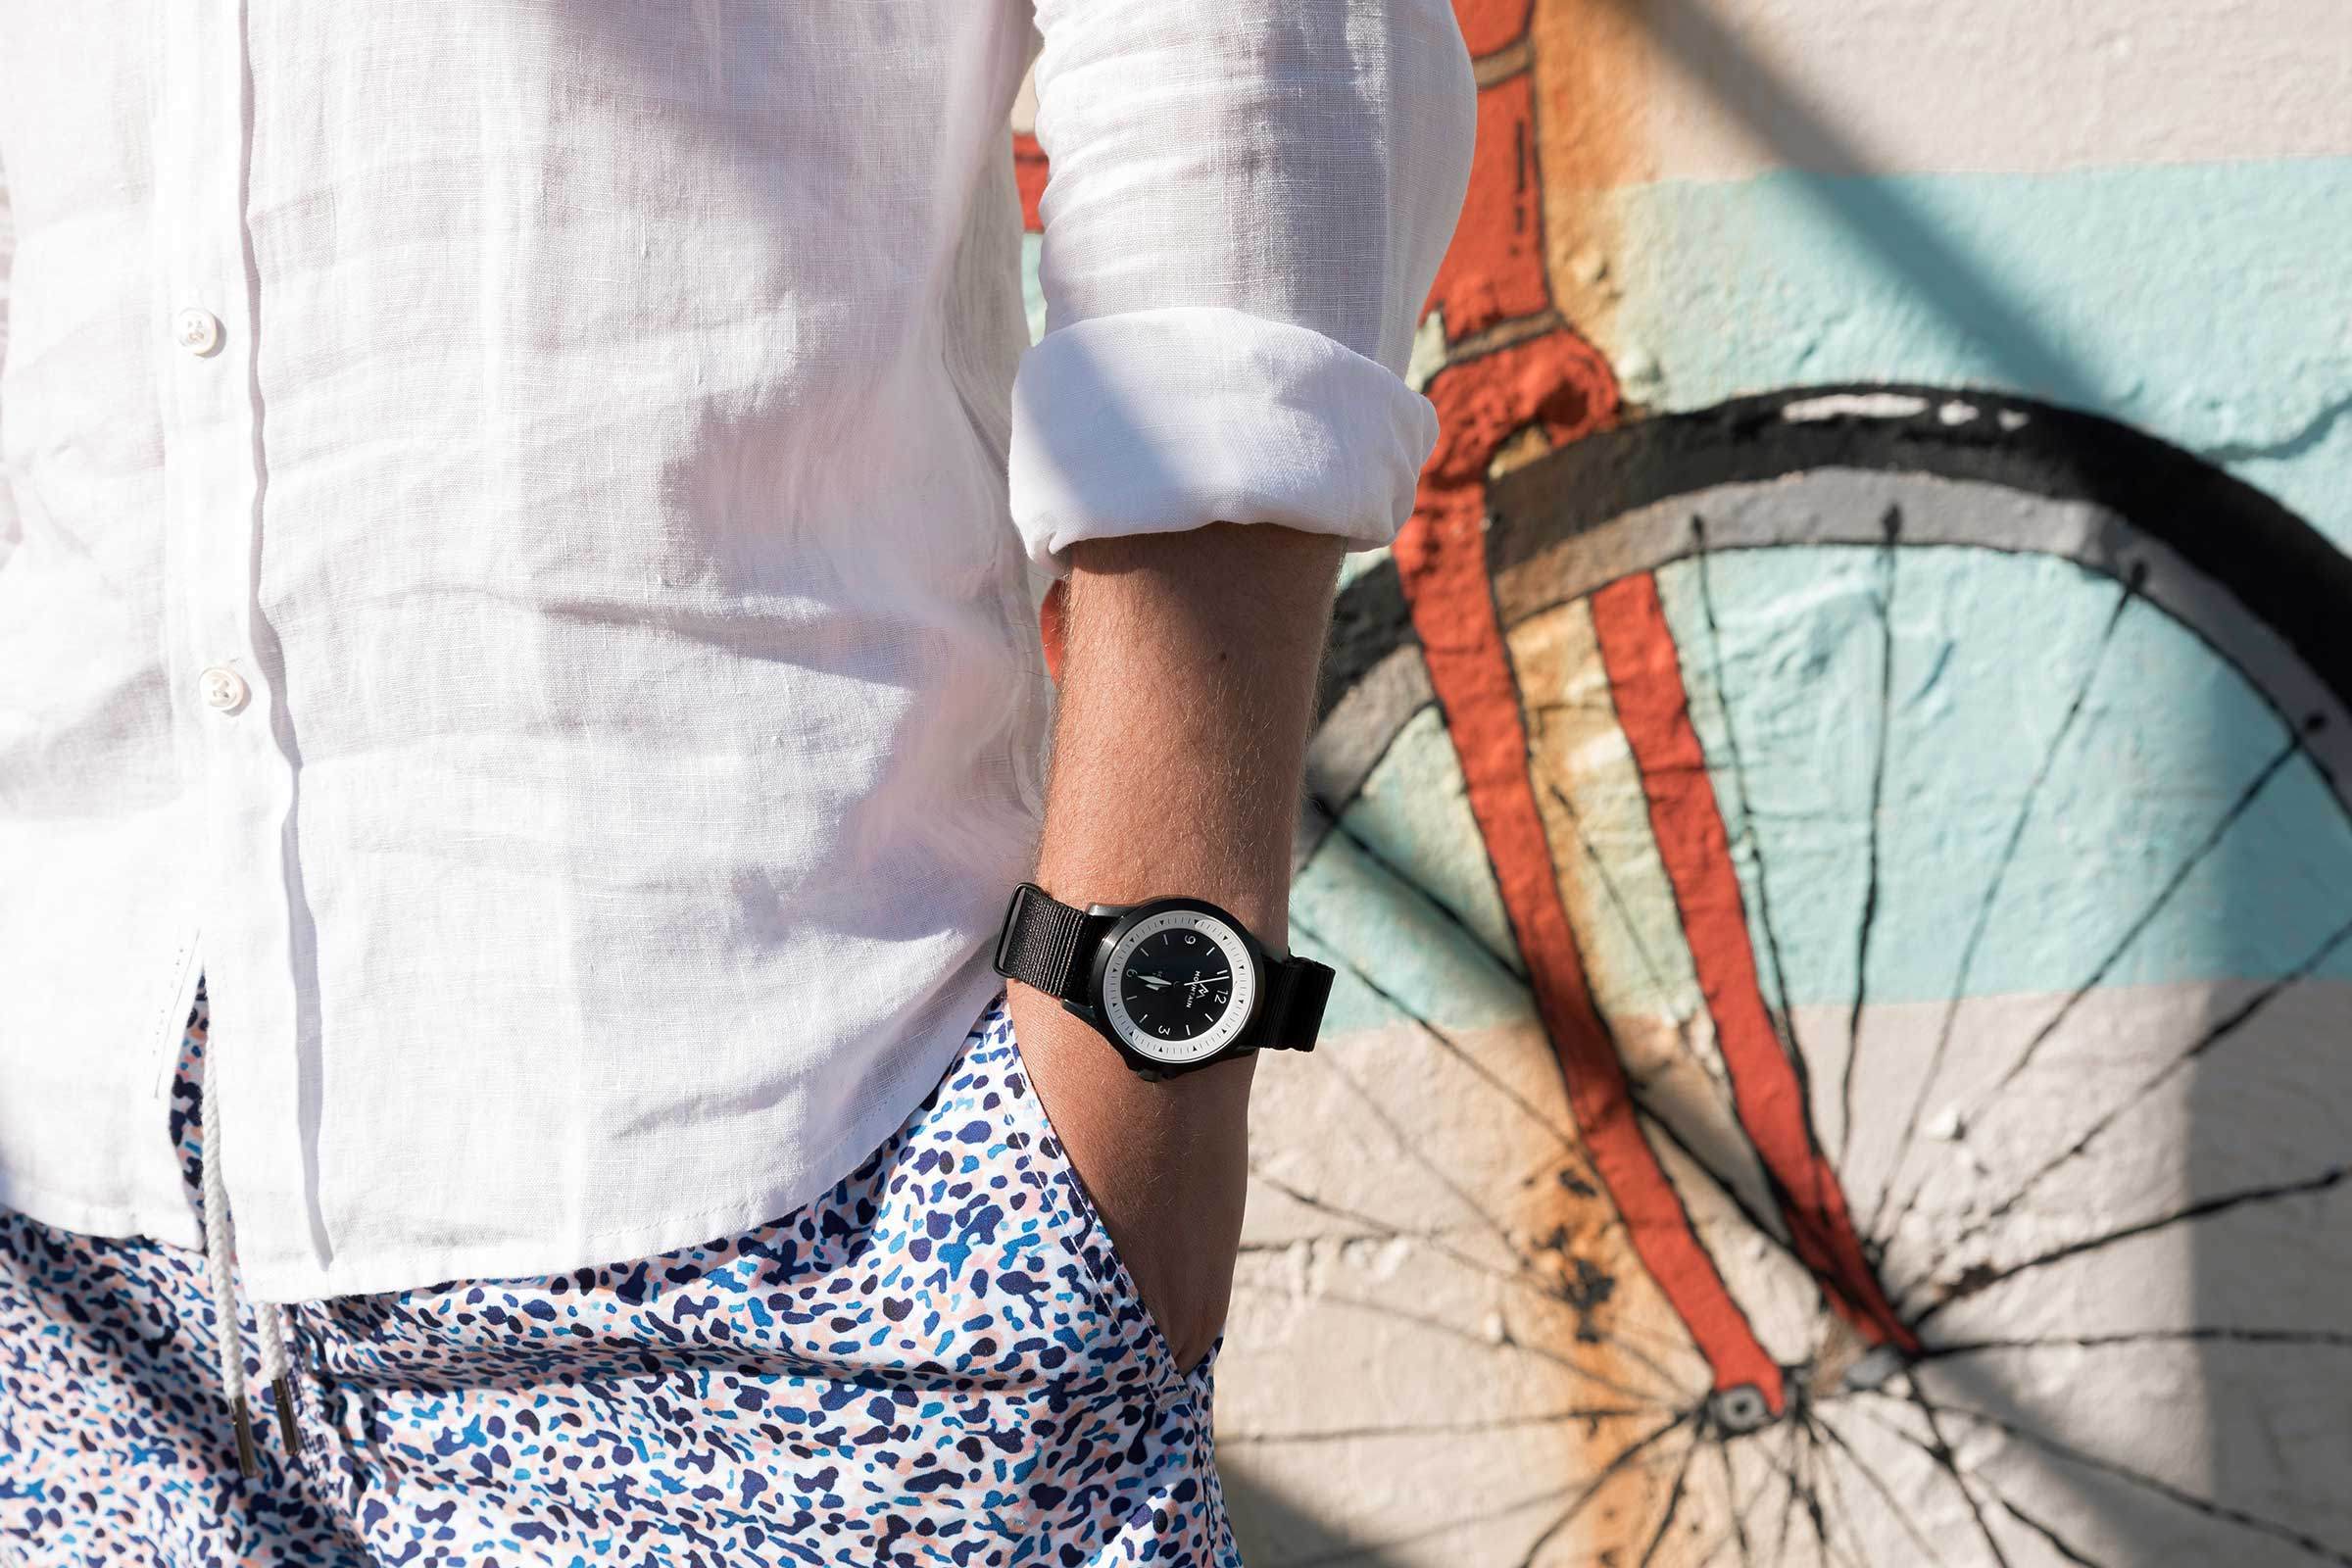 Sleek And Functional Watches For Every Day | Mountain Active Co.